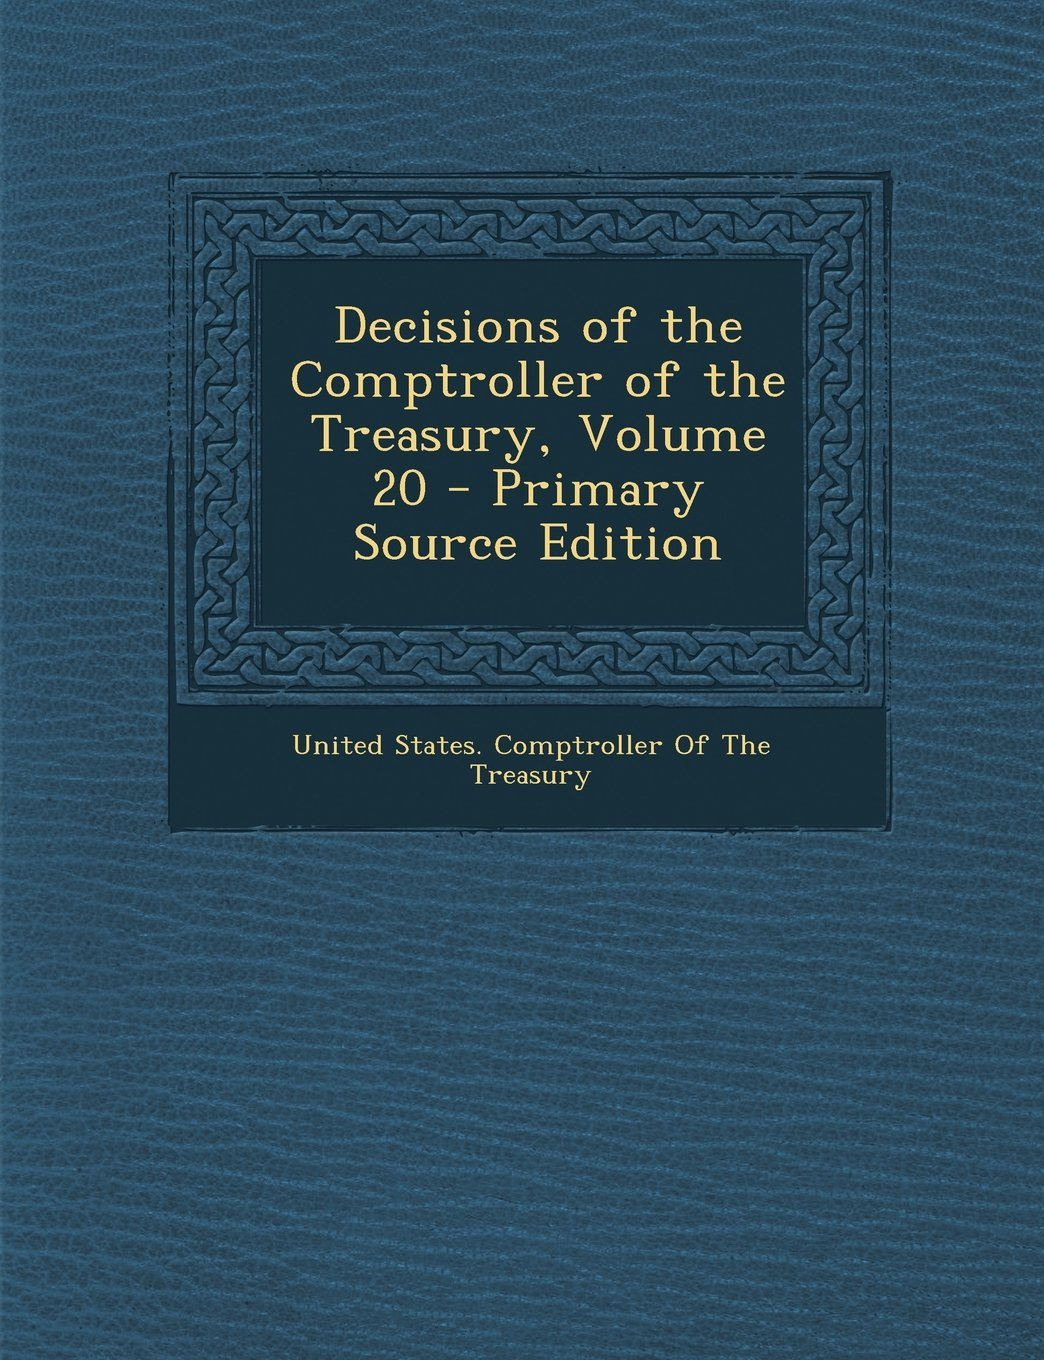 Decisions of the Comptroller of the Treasury, Volume 20 - Primary Source Edition pdf epub